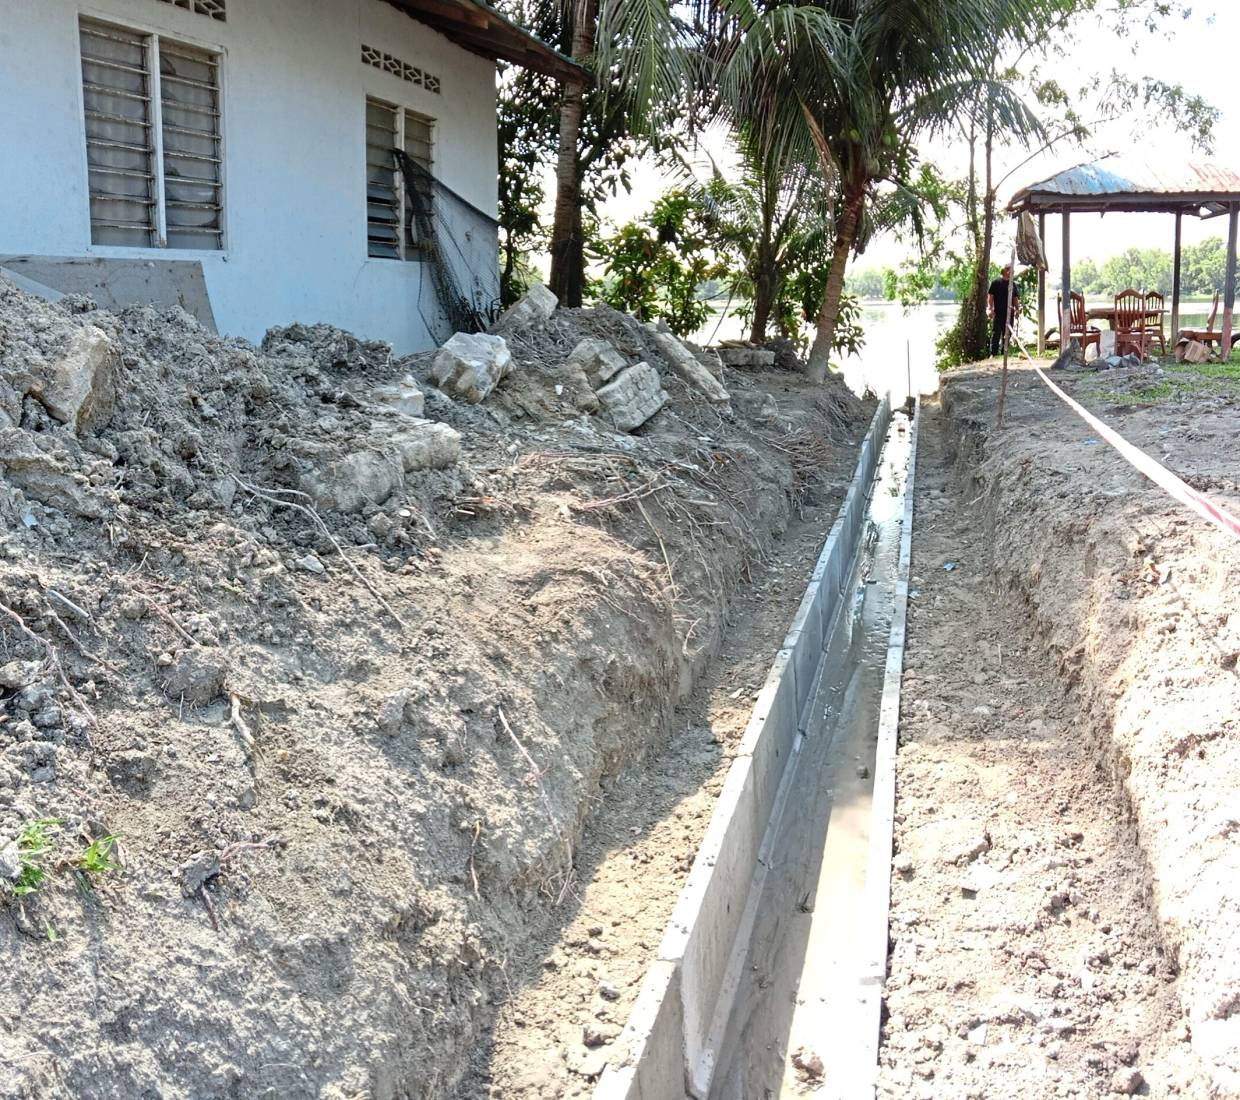 The construction of a U-shaped drain system measuring 400m is taking place in Kampung Melayu Seri Kundang.